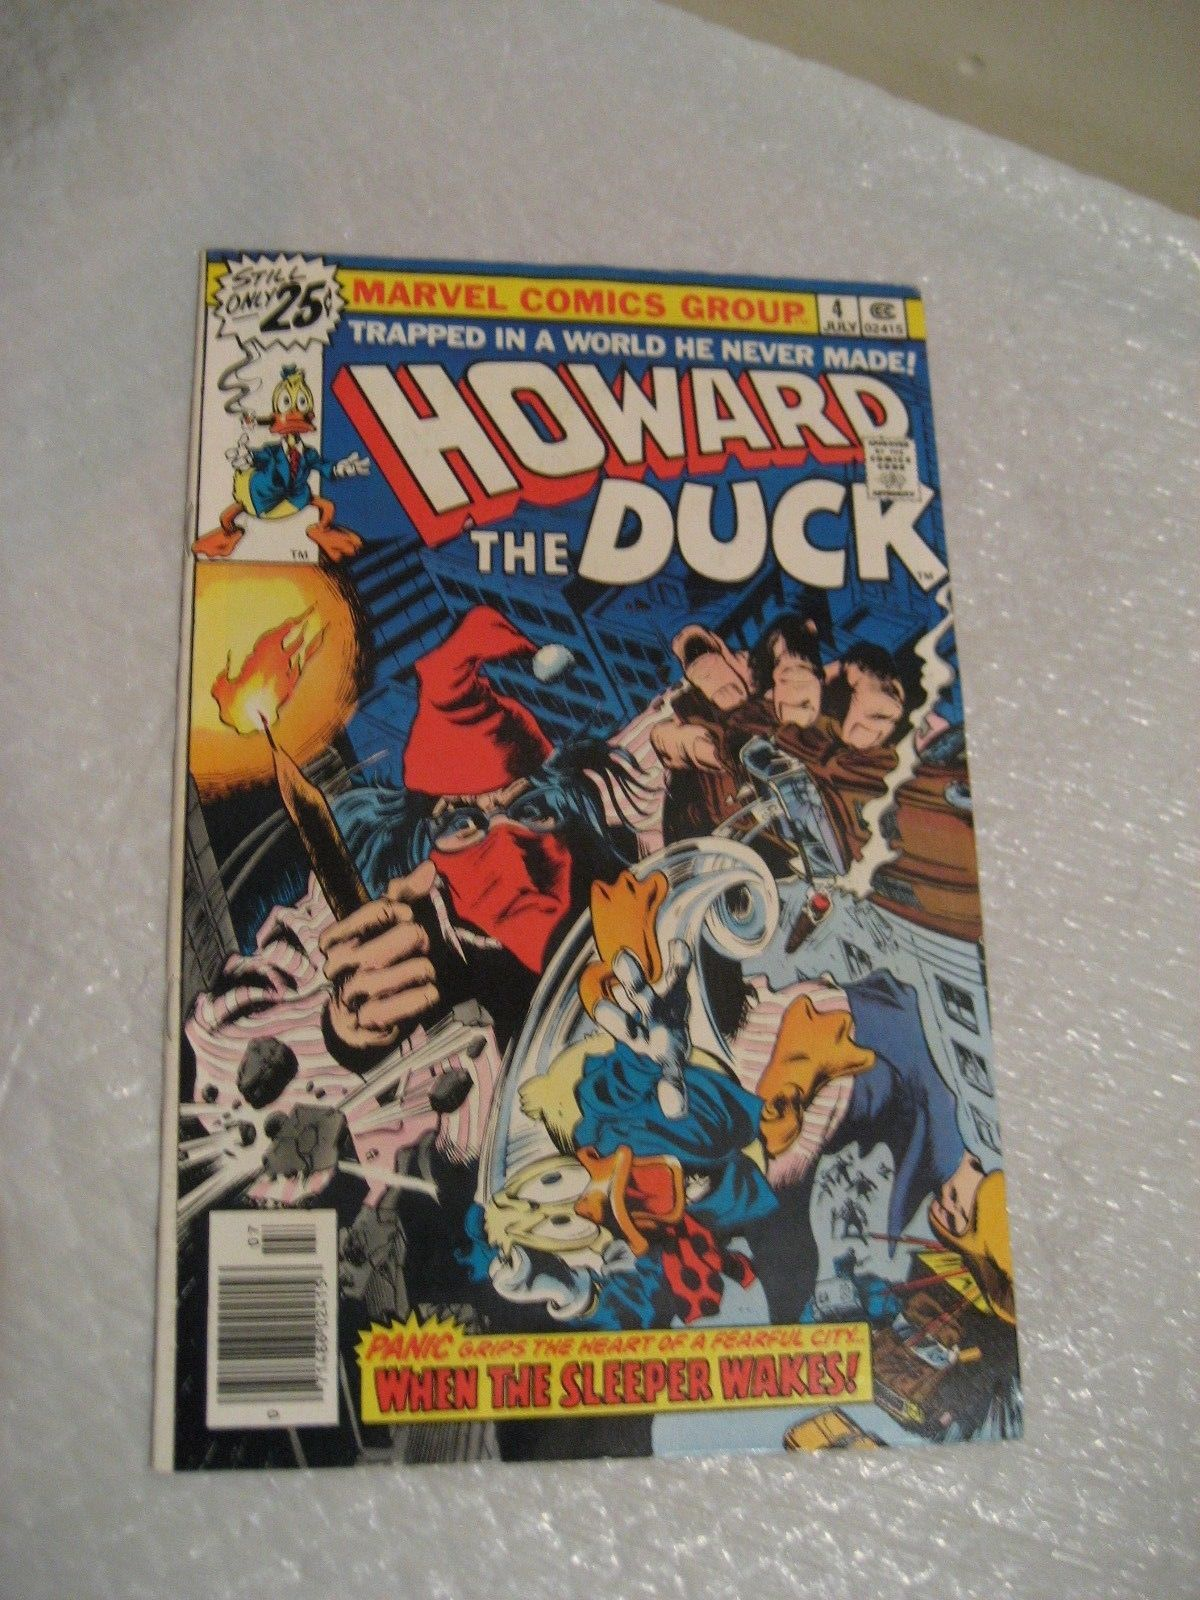 Primary image for HOWARD THE DUCK vol 1 #4 marvel comic book VF cond, 1976